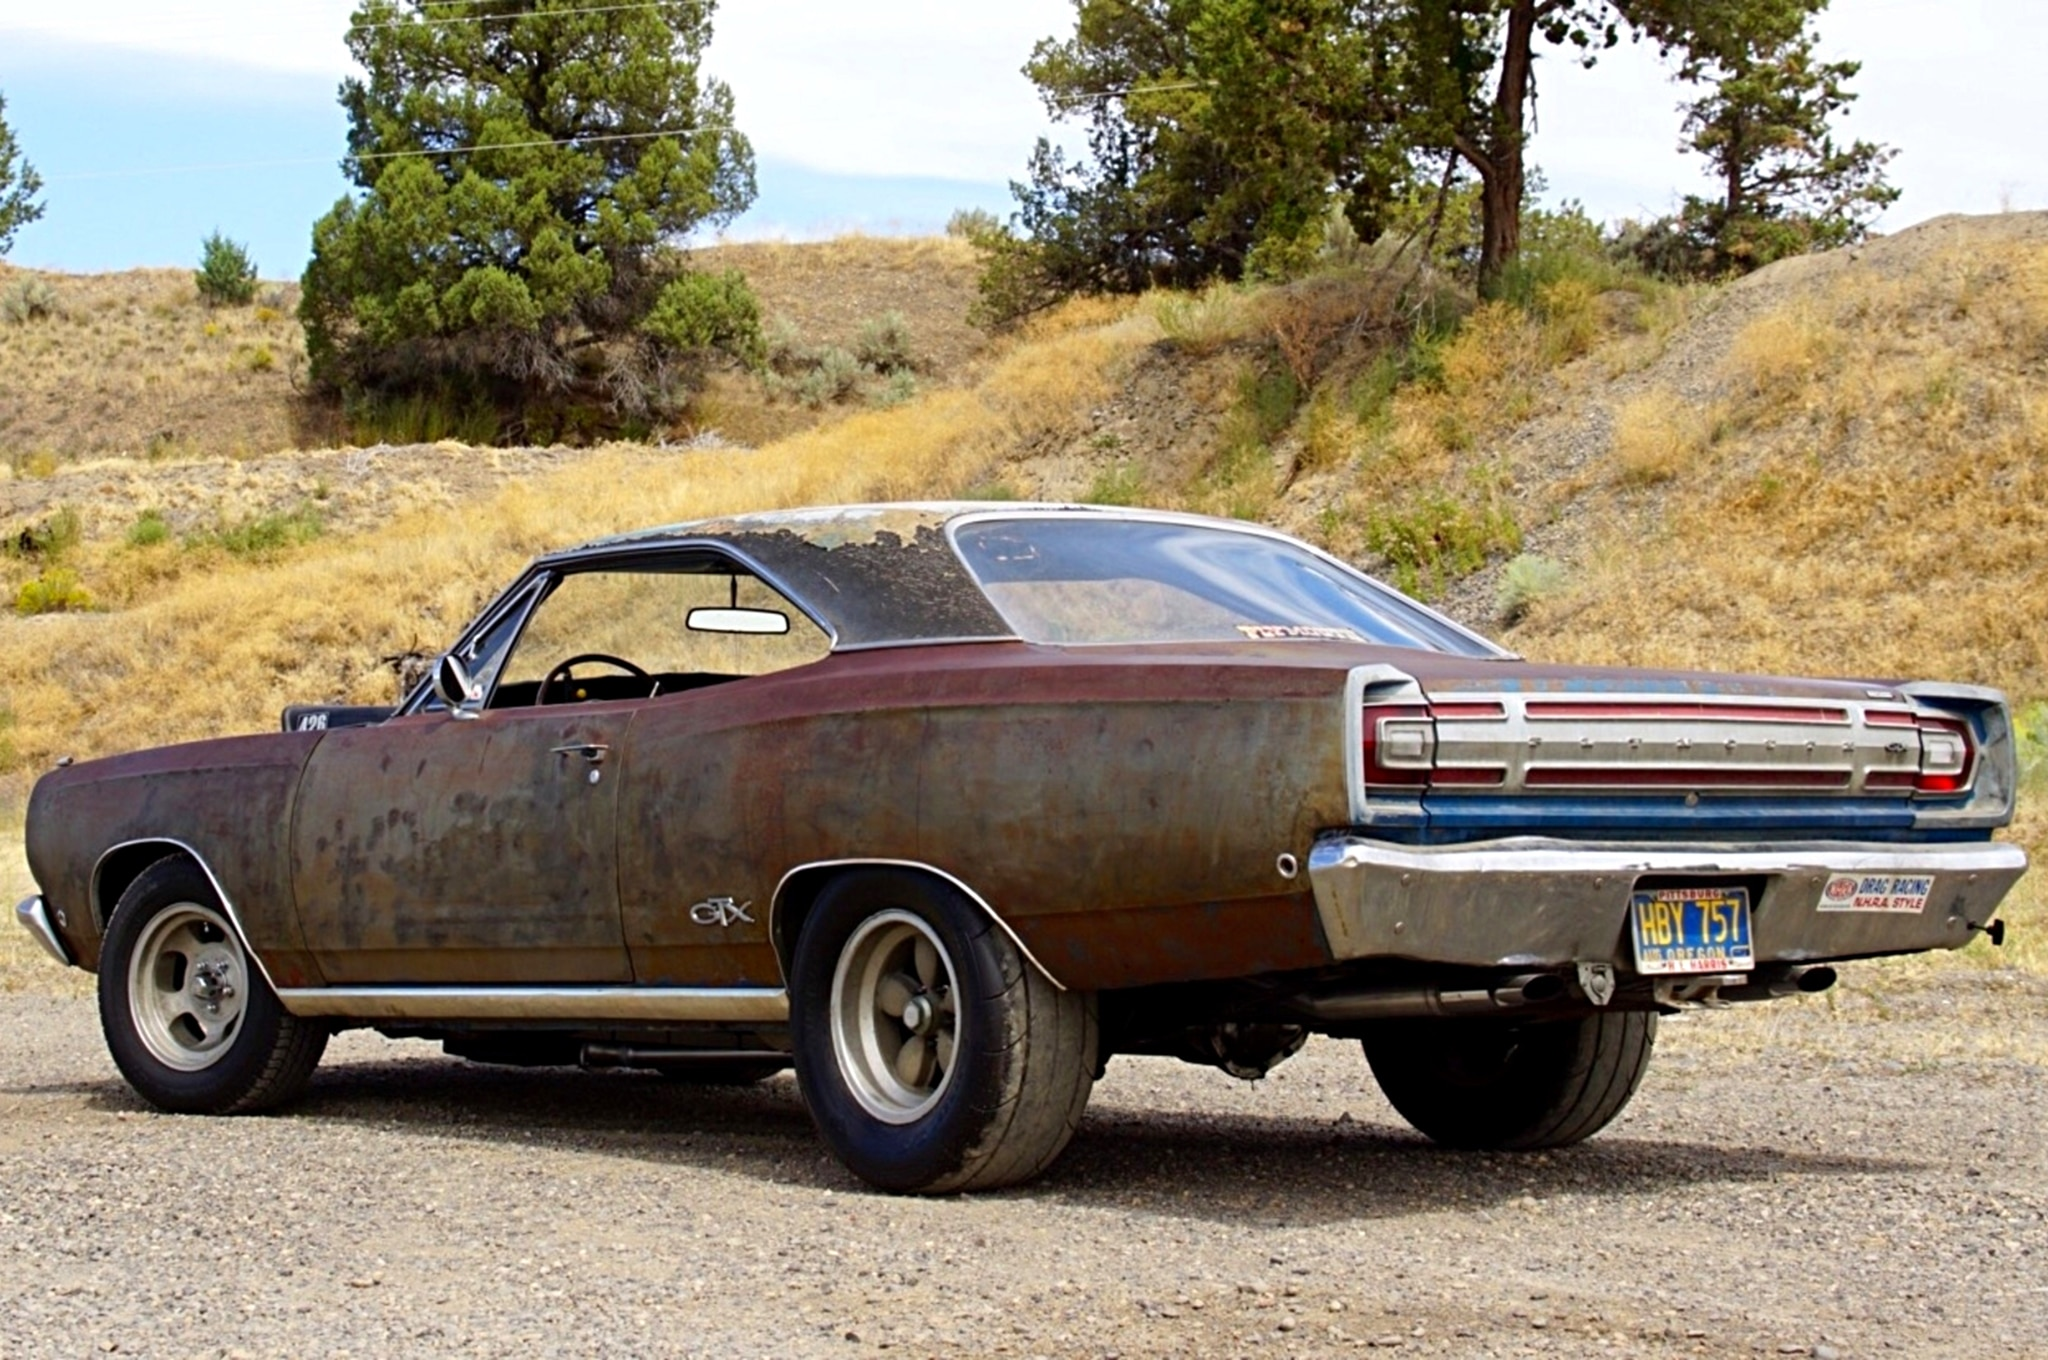 Plymouth gtx photo - 6